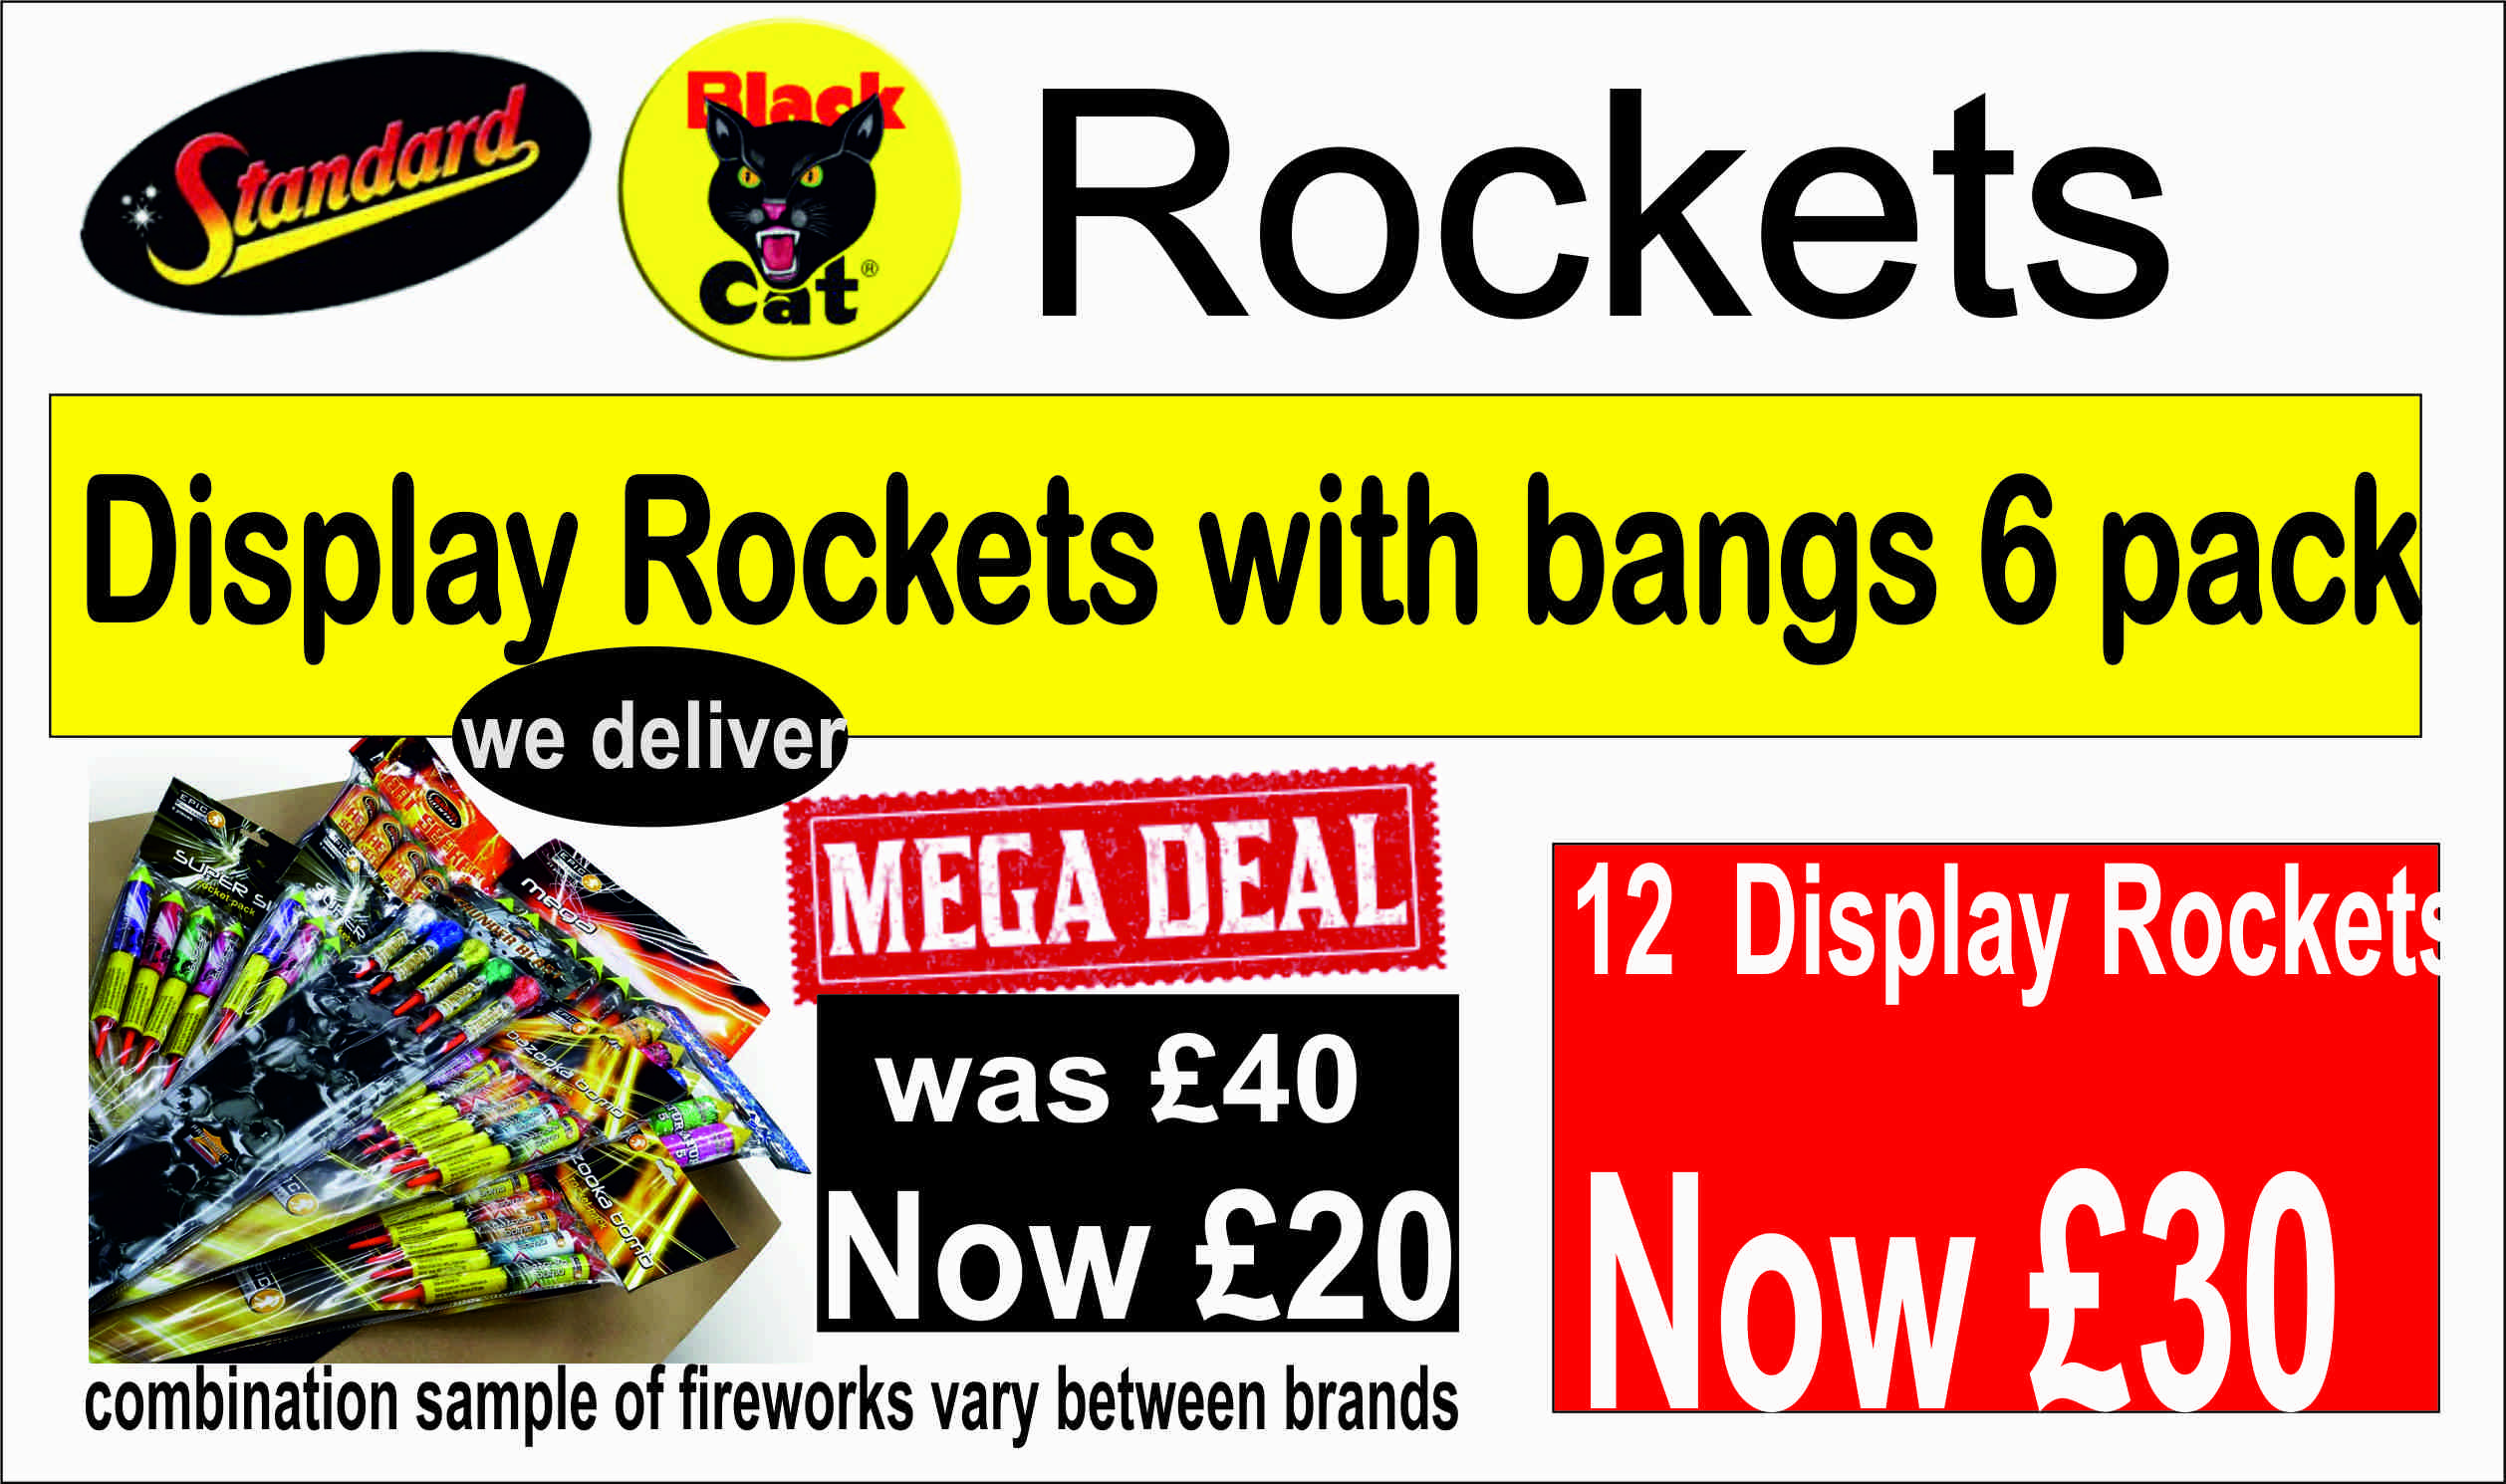 Display Rockets with Bangs (Pack of 6) at GADGETS FIX